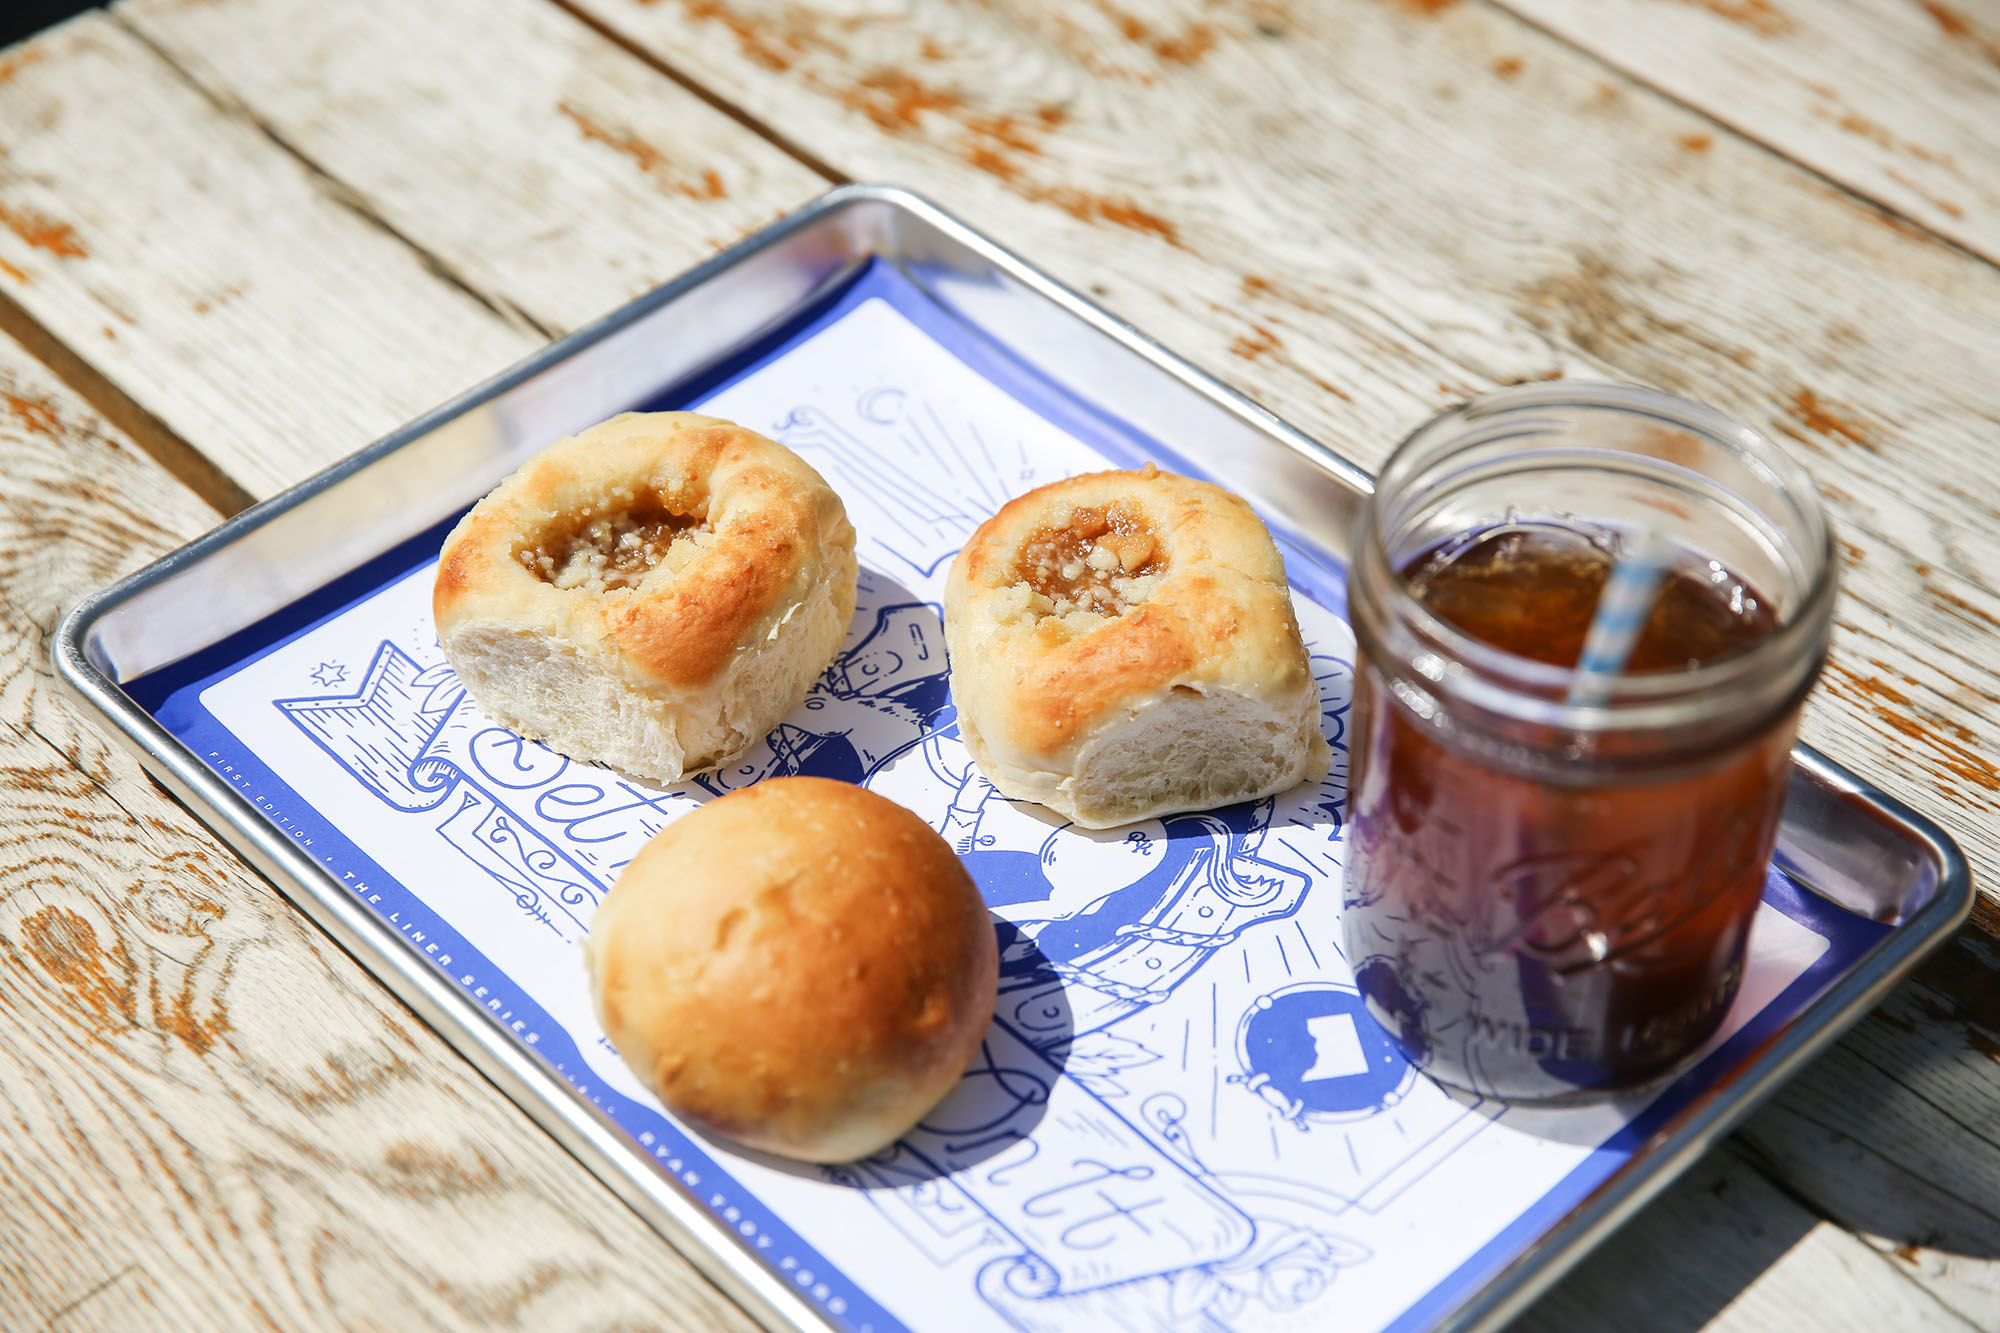 Rise and shine to kolaches: The breakfast food you should be eating on Saturday mornings